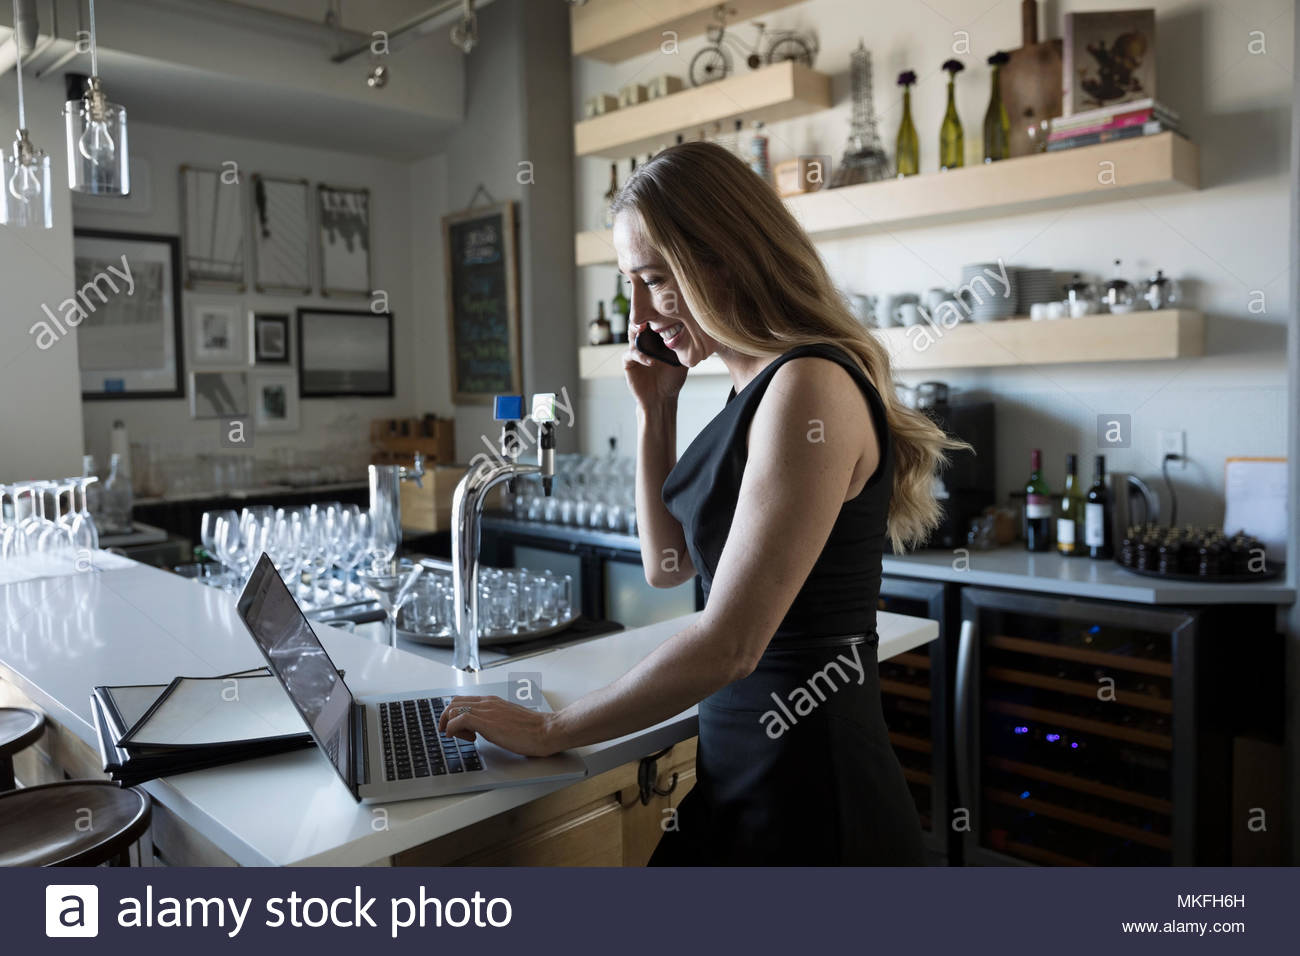 Femme small business owner téléphone intelligent et working at laptop in cafe Photo Stock